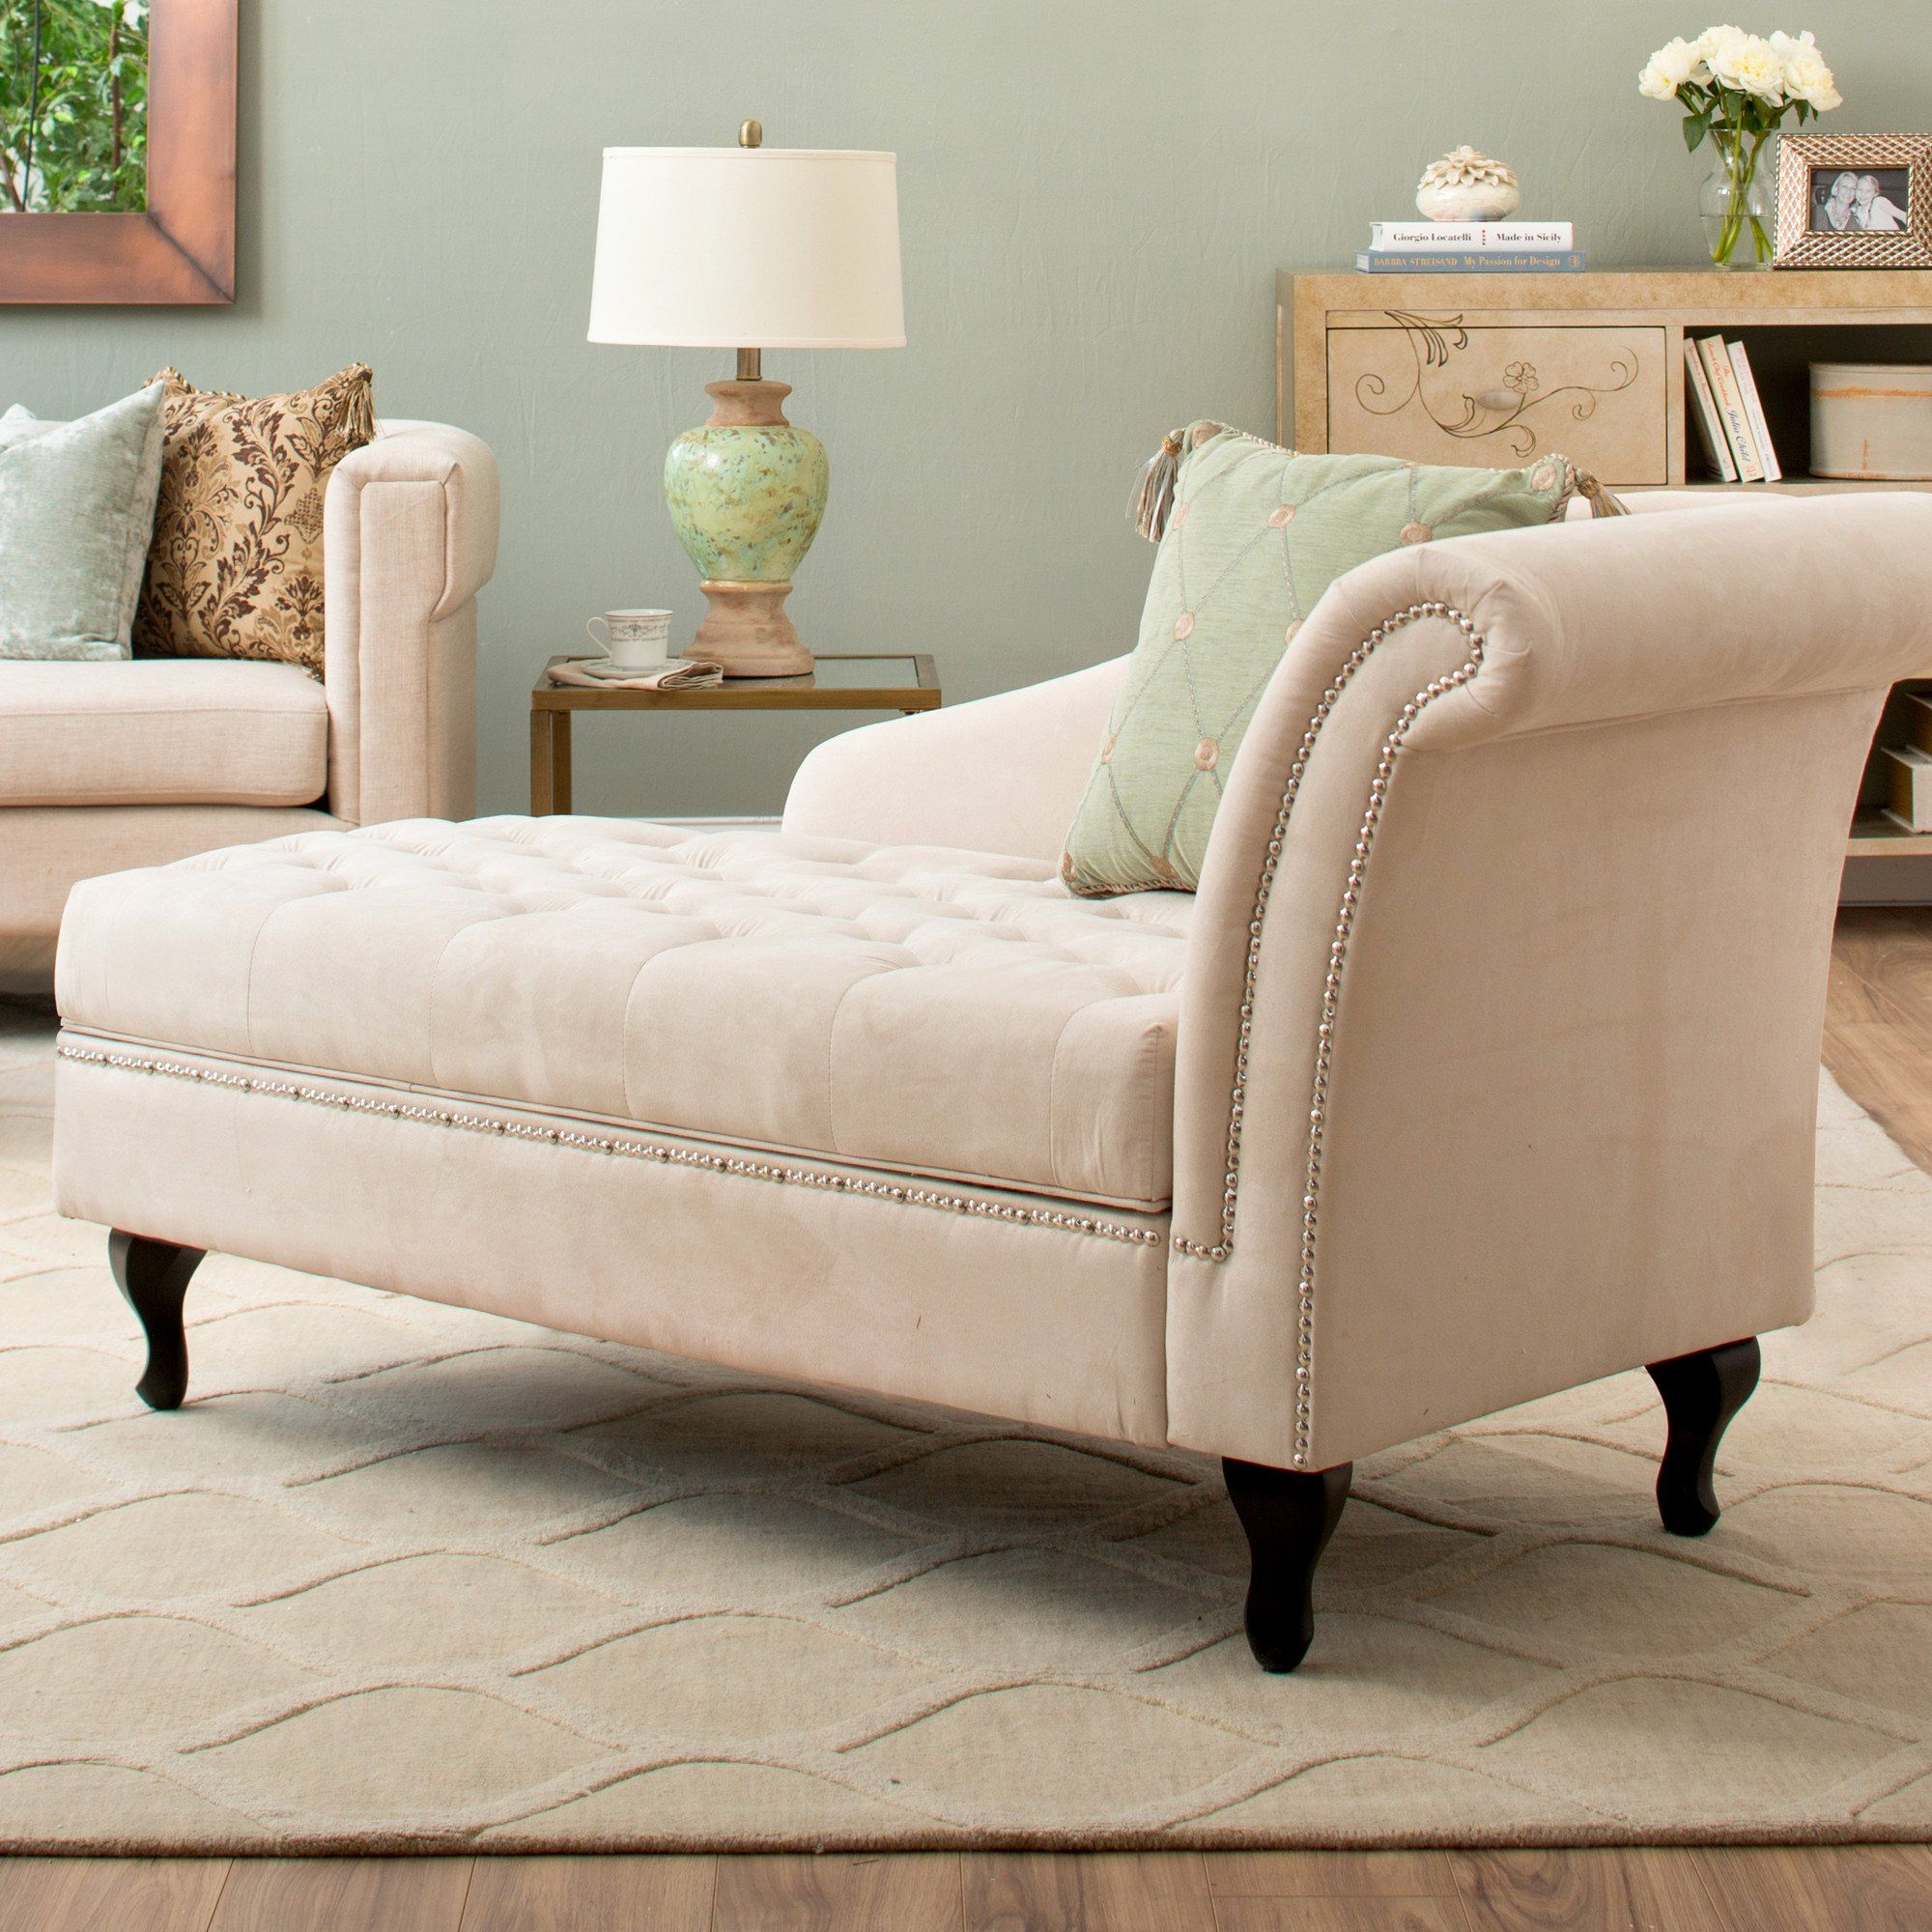 Storage Chaise Lounge Luxurious Tufted Classic/traditional Style : storage chaise lounge - Sectionals, Sofas & Couches